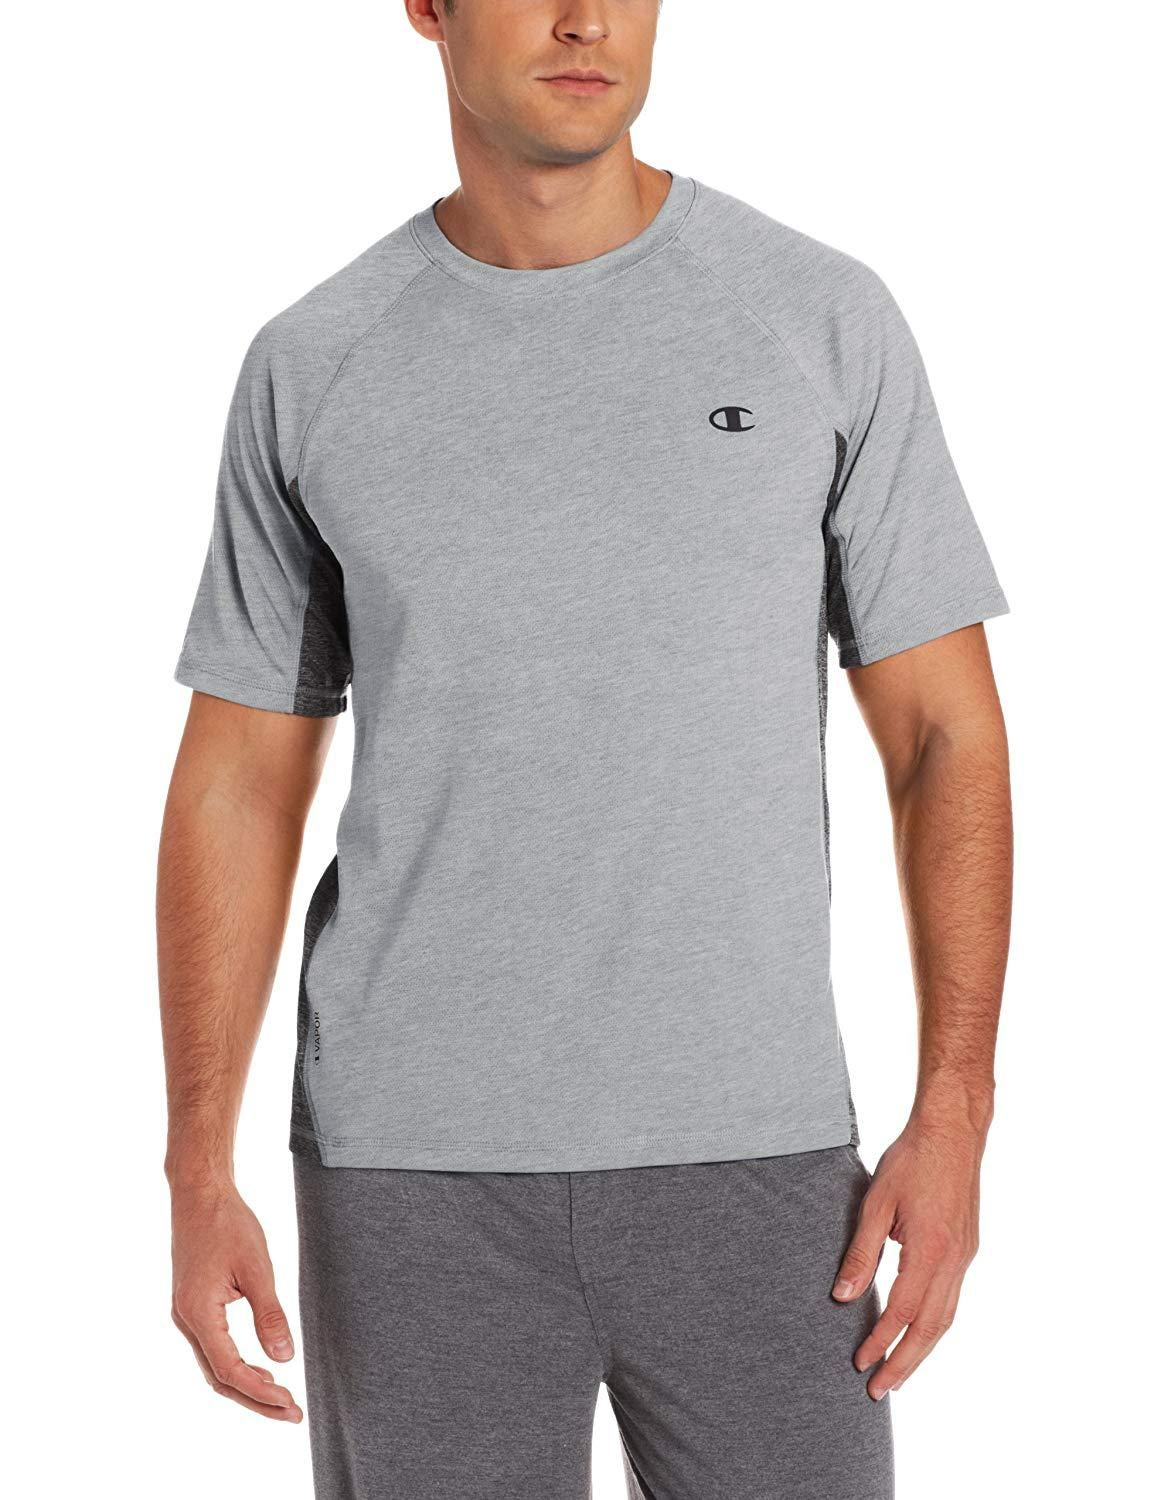 15ed01b6 Champion Men's Powertrain Performance T-Shirt in 2019   Products ...